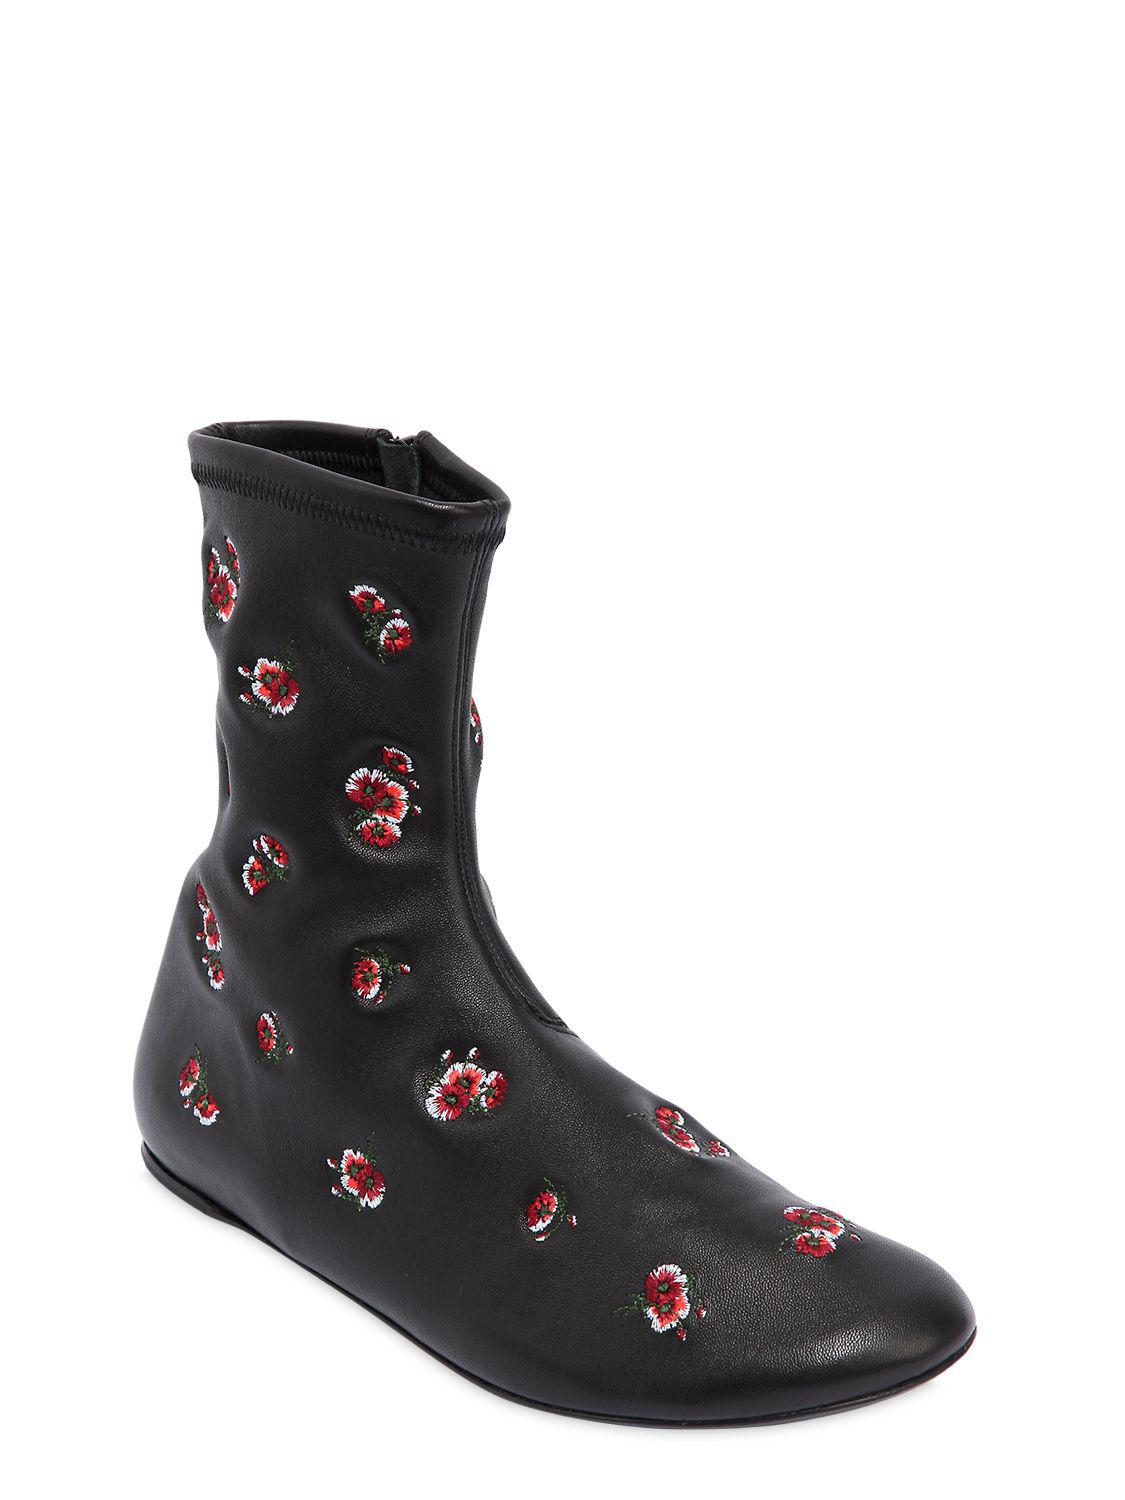 Fashionable Cheap Price Cheap Sale Deals Kenzo Leather boots with emrboidered flowers Purchase Sale Online dcMXA